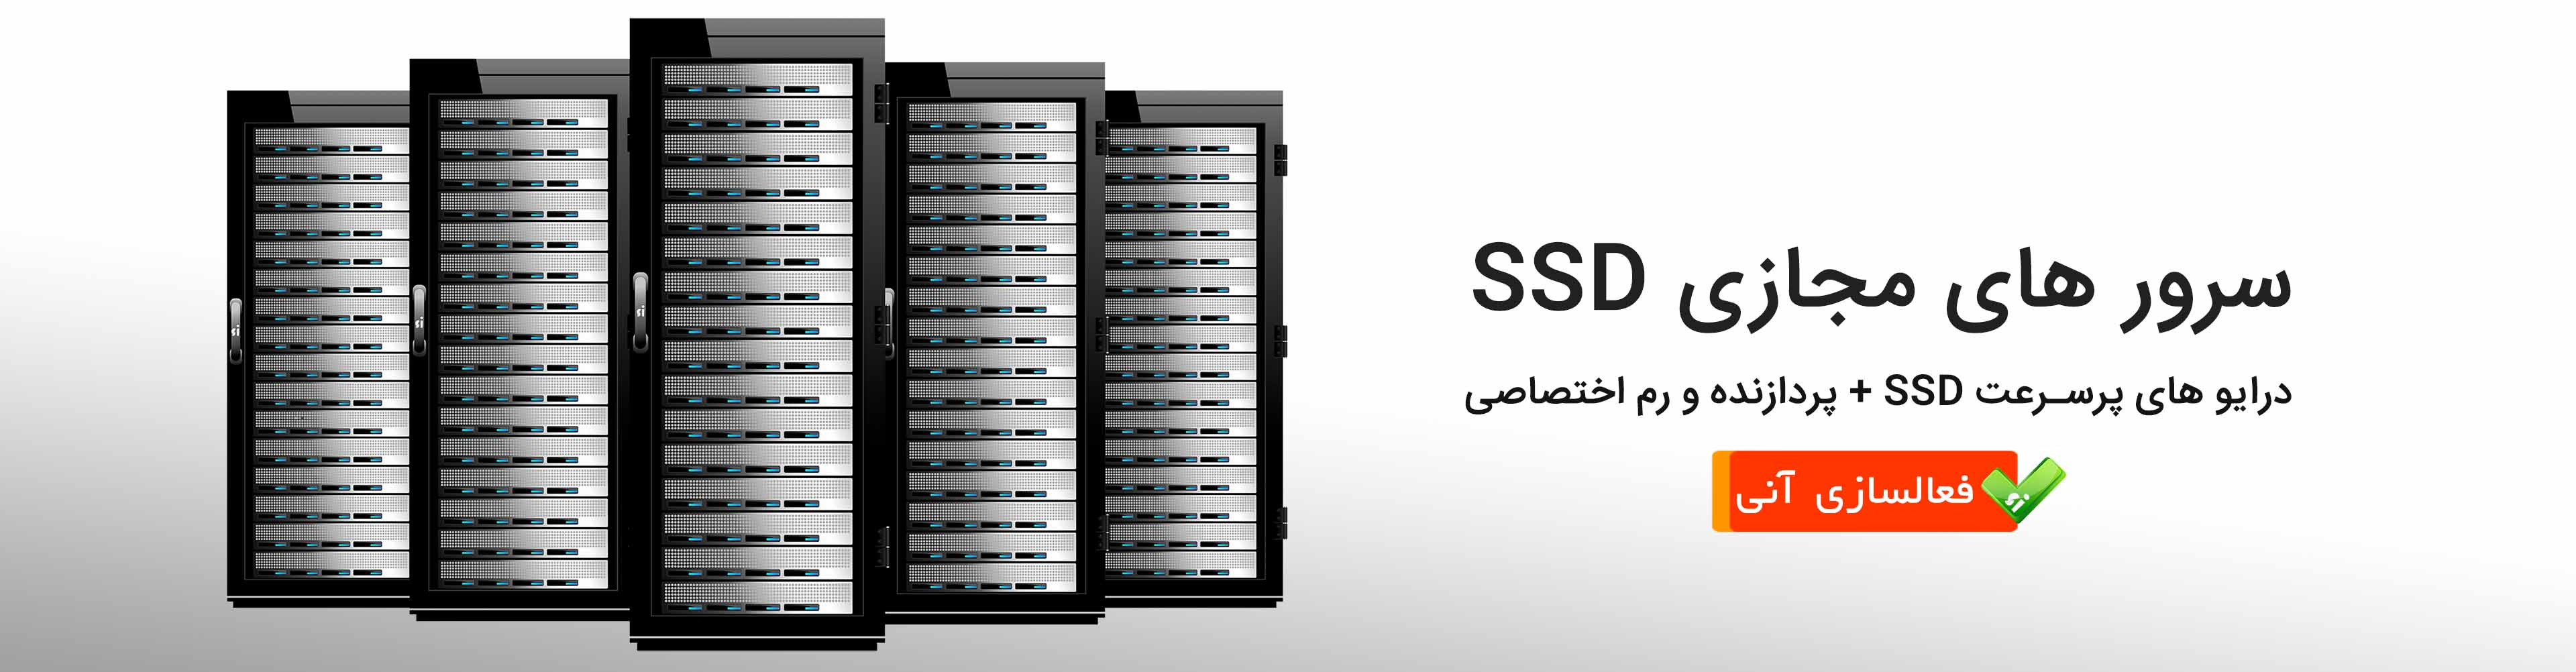 ssd-vps-new